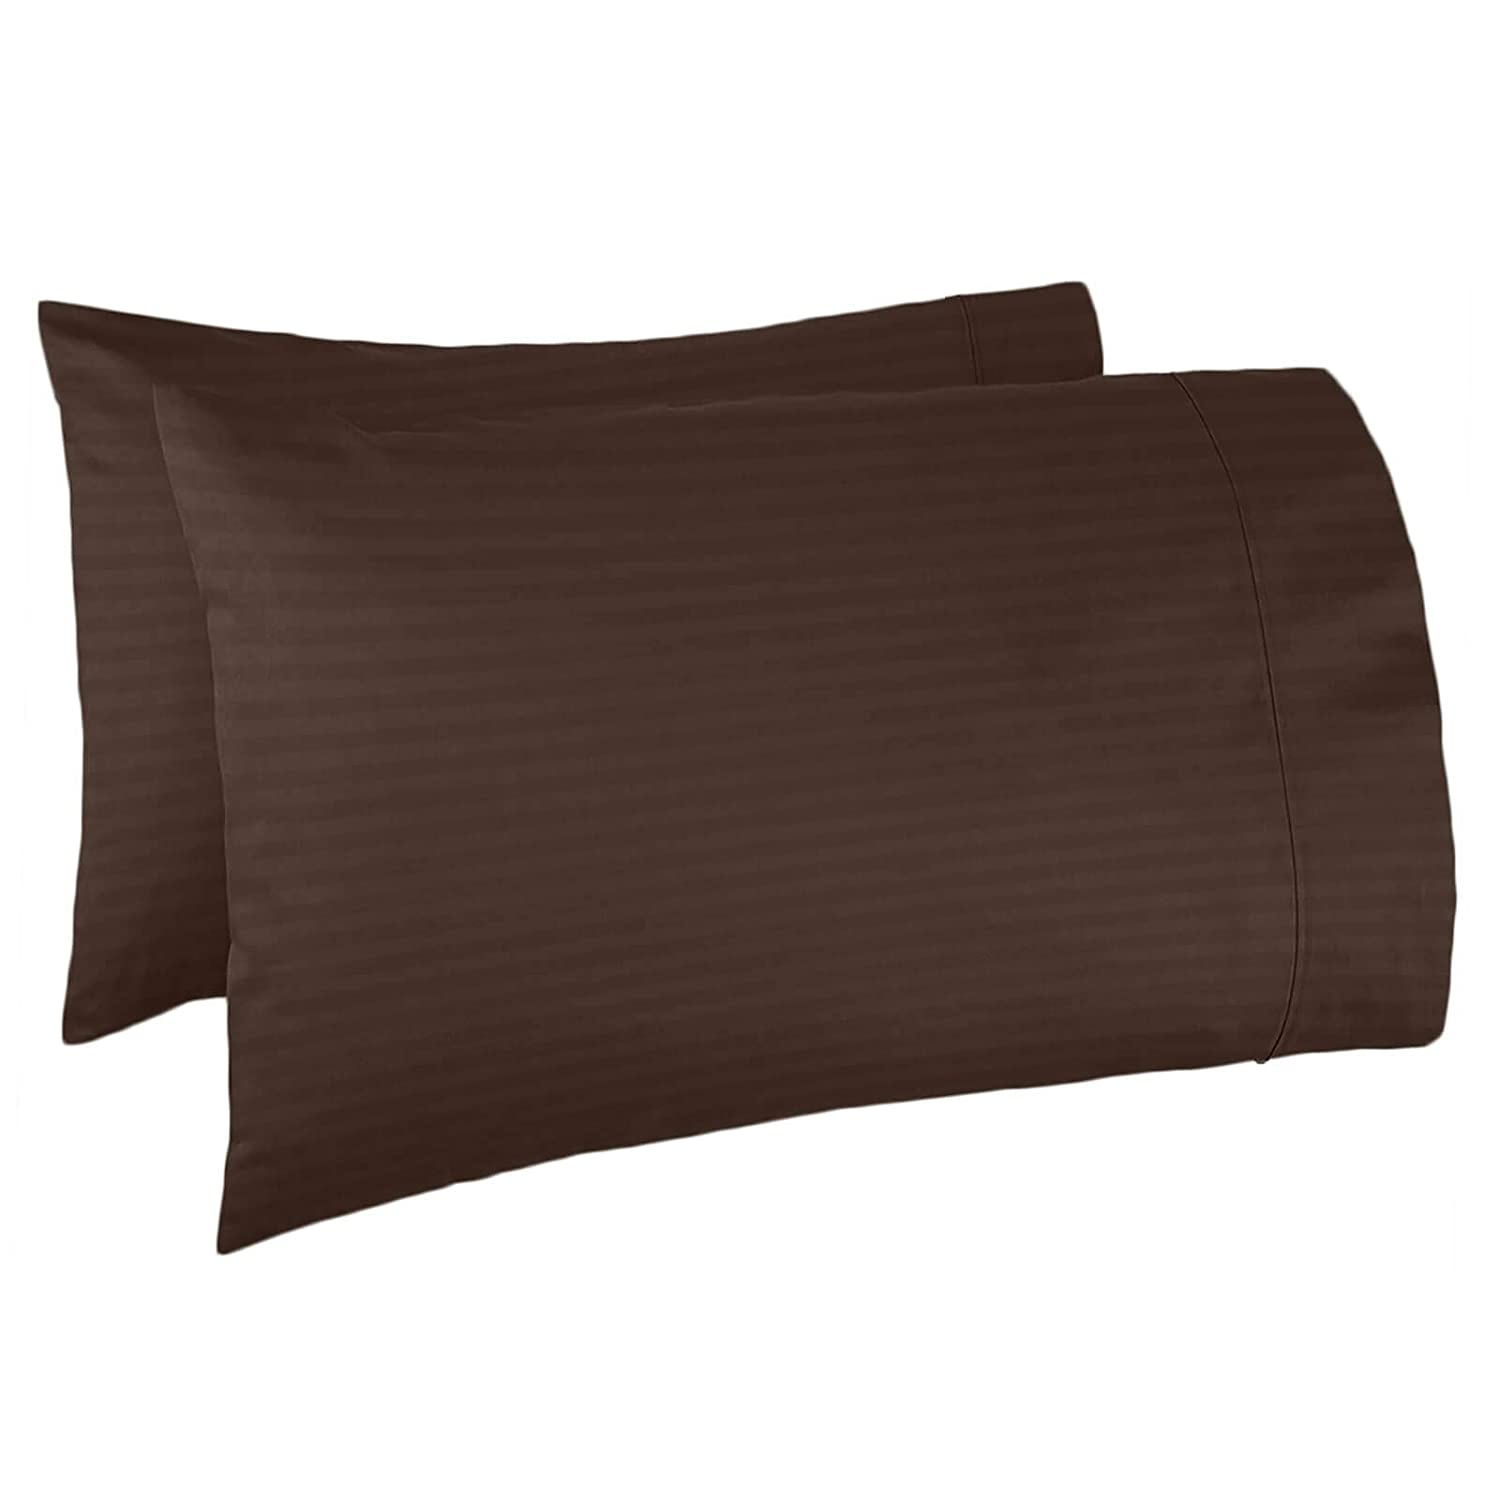 Nestl Bedding Soft Pillow Case Set of 2 – Double Brushed Microfiber Hypoallergenic Pillow Covers – 1800 Series Damask Dobby Stripe Pillow Cases, King - Brown